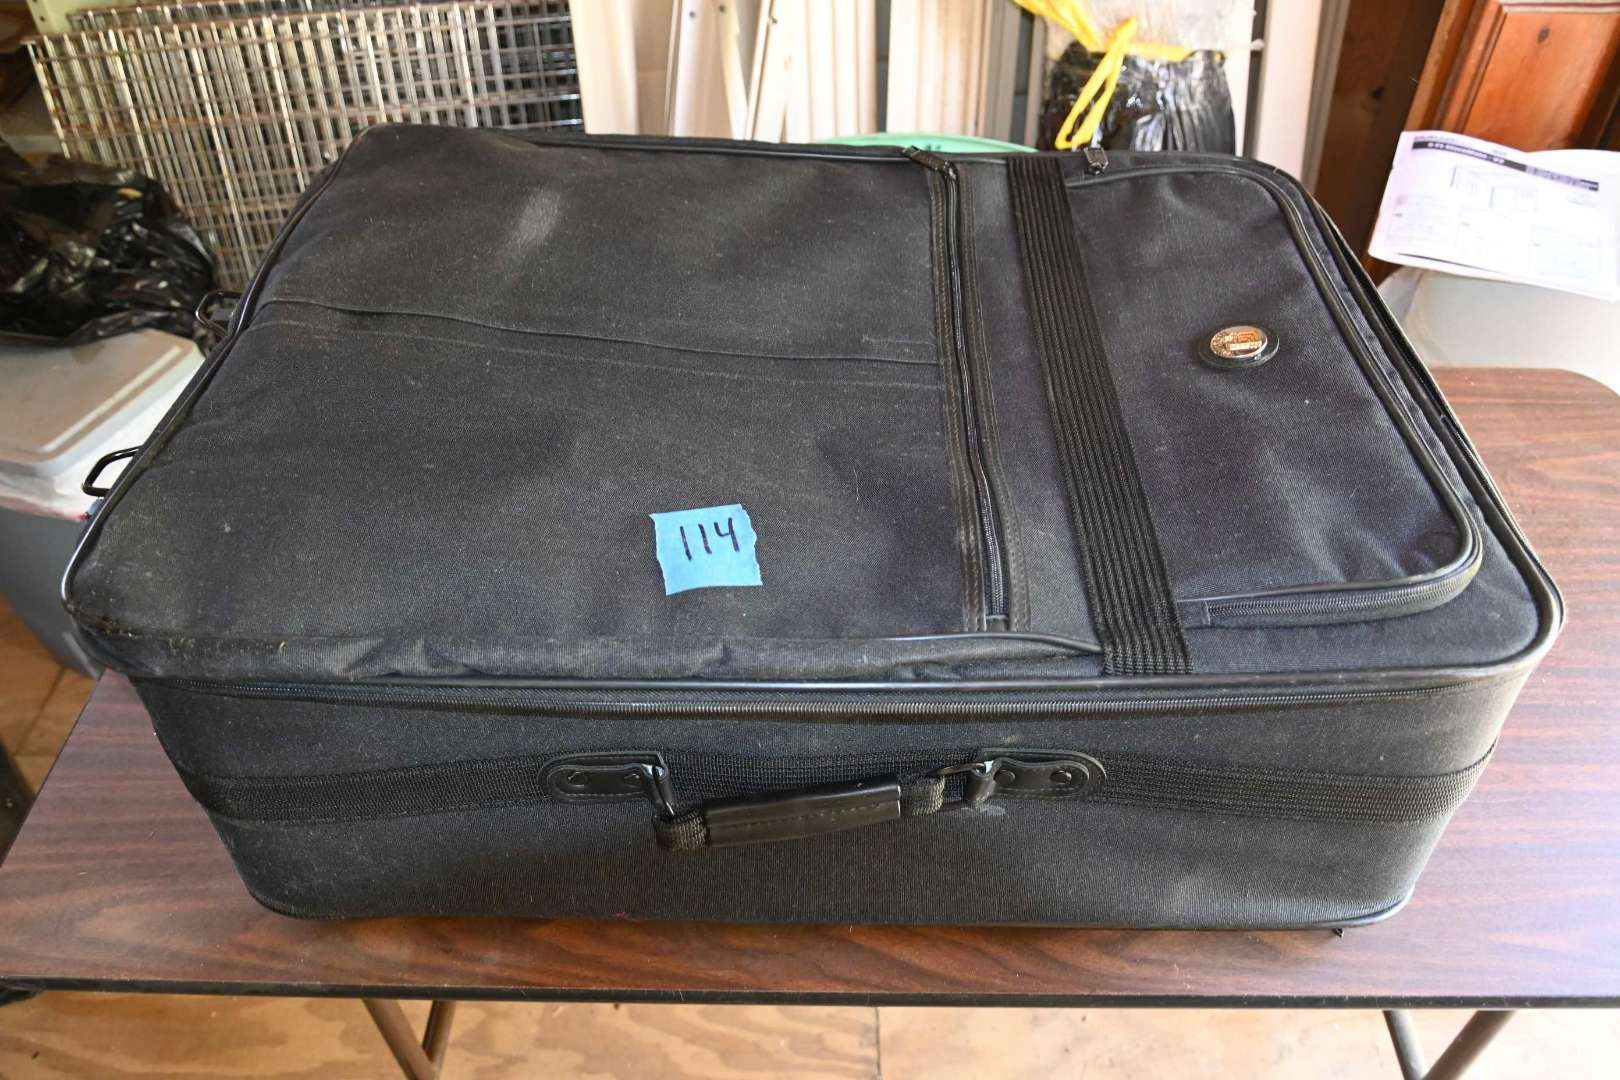 Lot # 114 Large OLYMPIA rolling suitcase